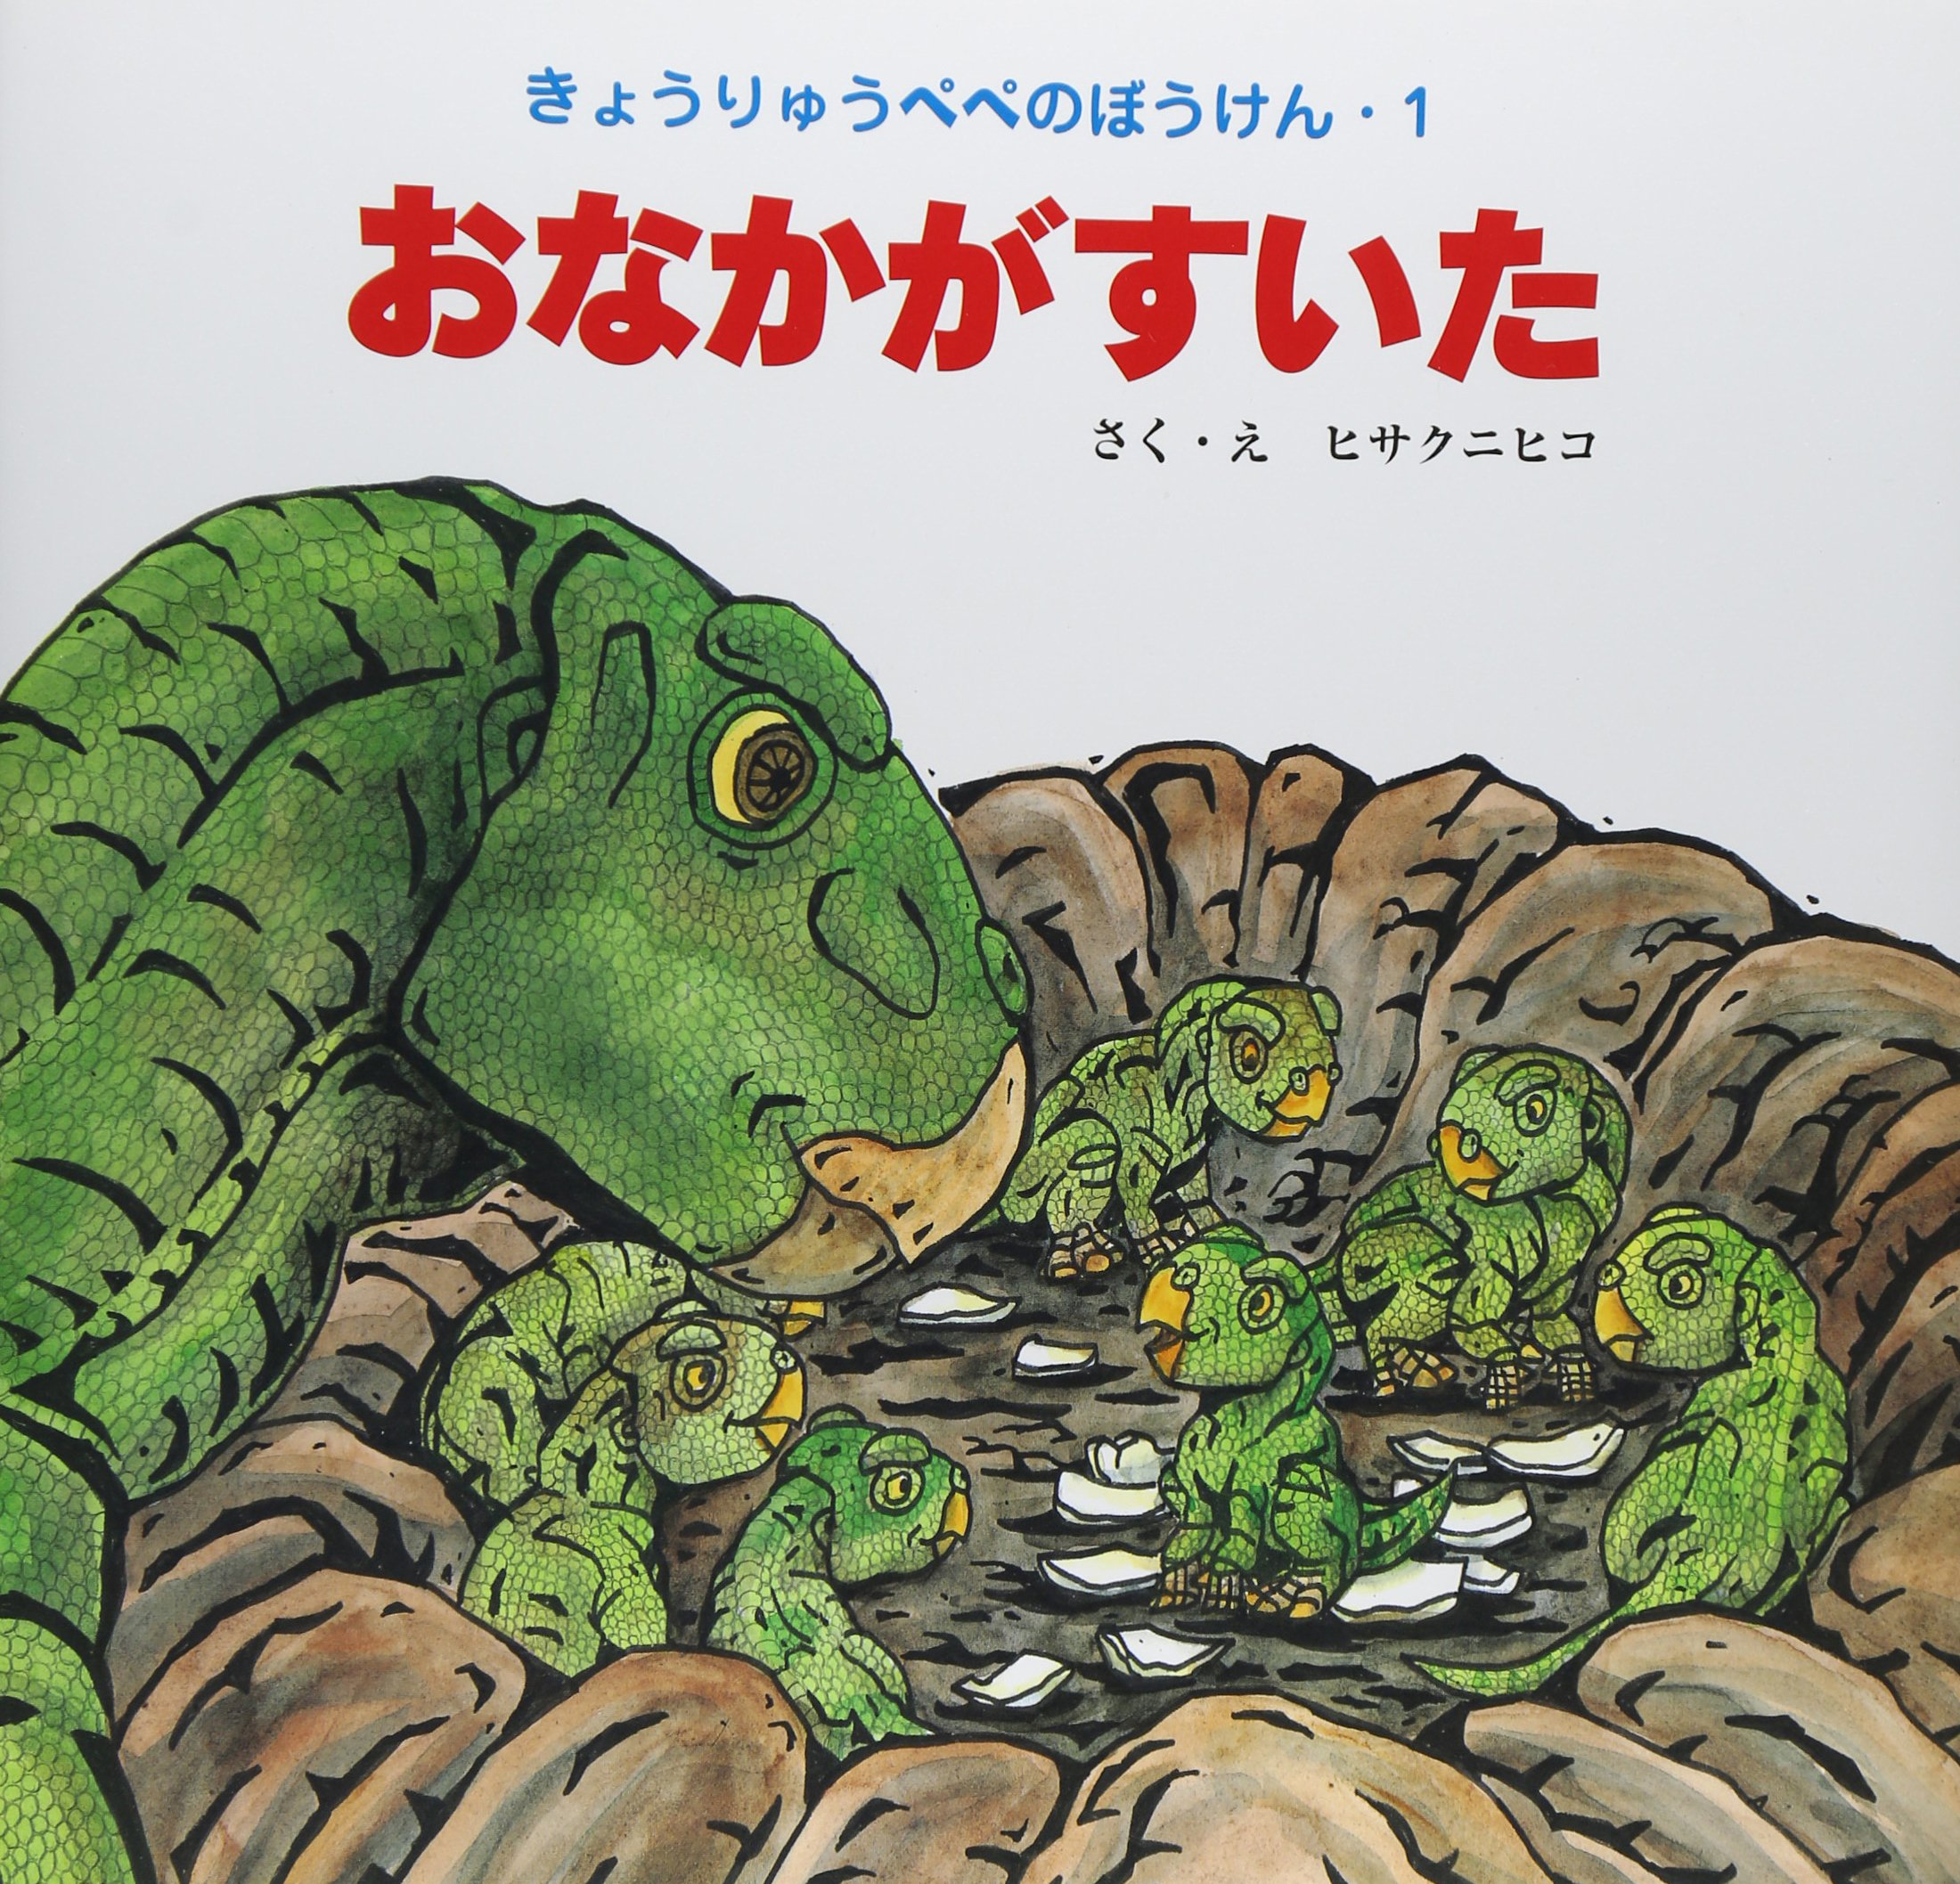 I M Hungry Adventure Dinosaur Pepe 1 Adventure Dinosaur Pepe 1 2006 Isbn 4882642506 Japanese Import 9784882642503 Amazon Com Books